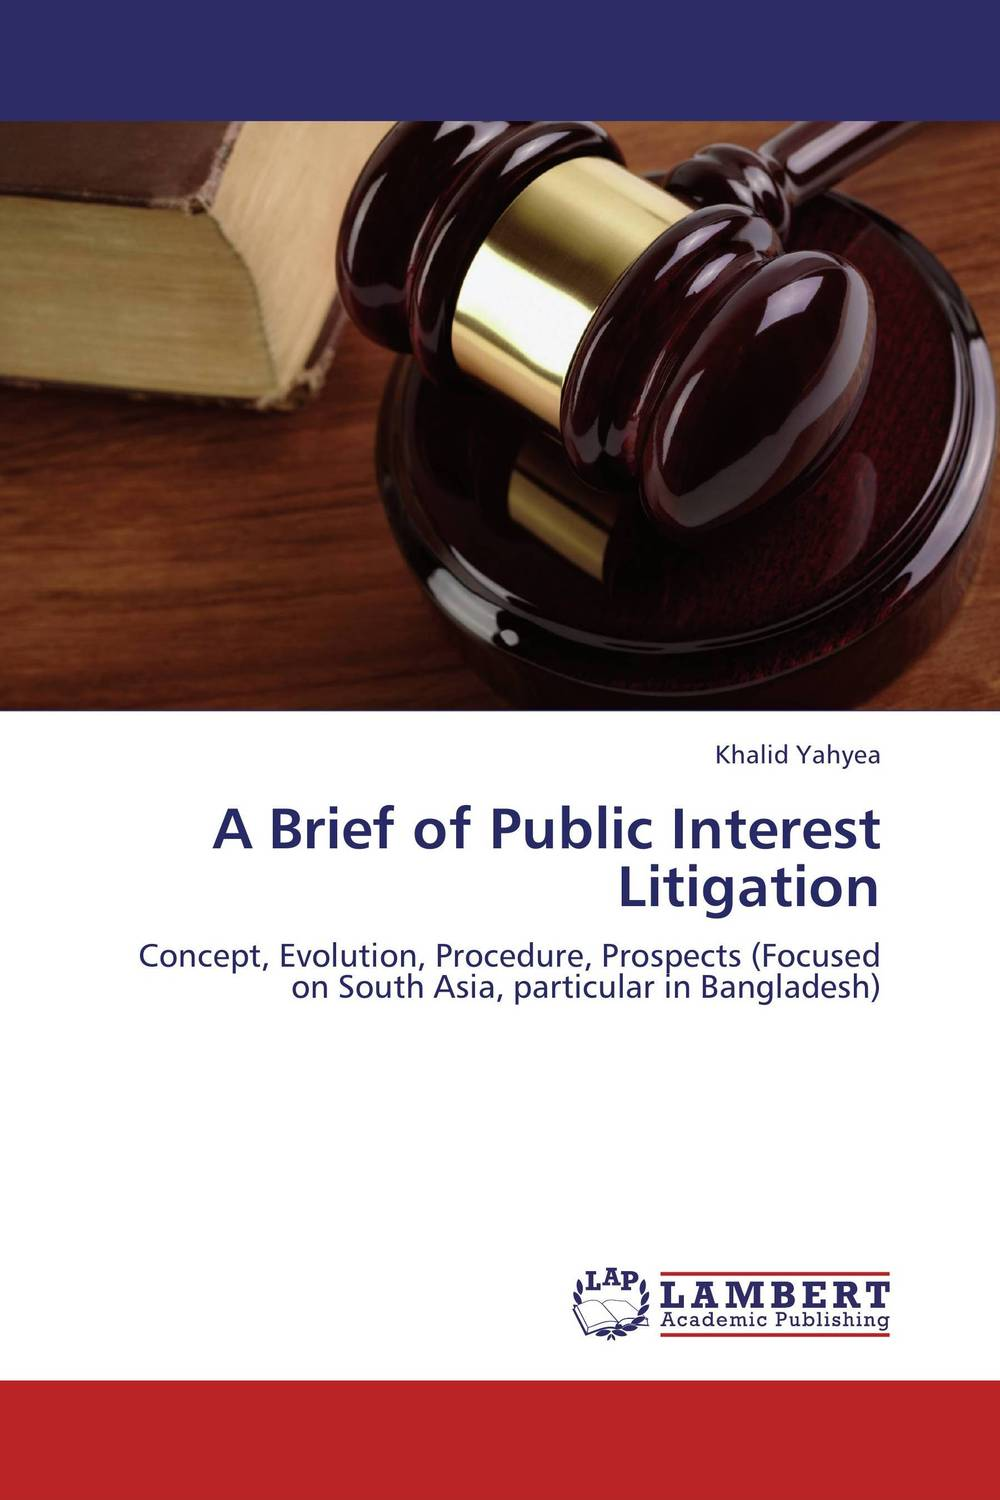 A Brief of Public Interest Litigation asep rahmat fajar the public participation in the selection of justice in indonesia